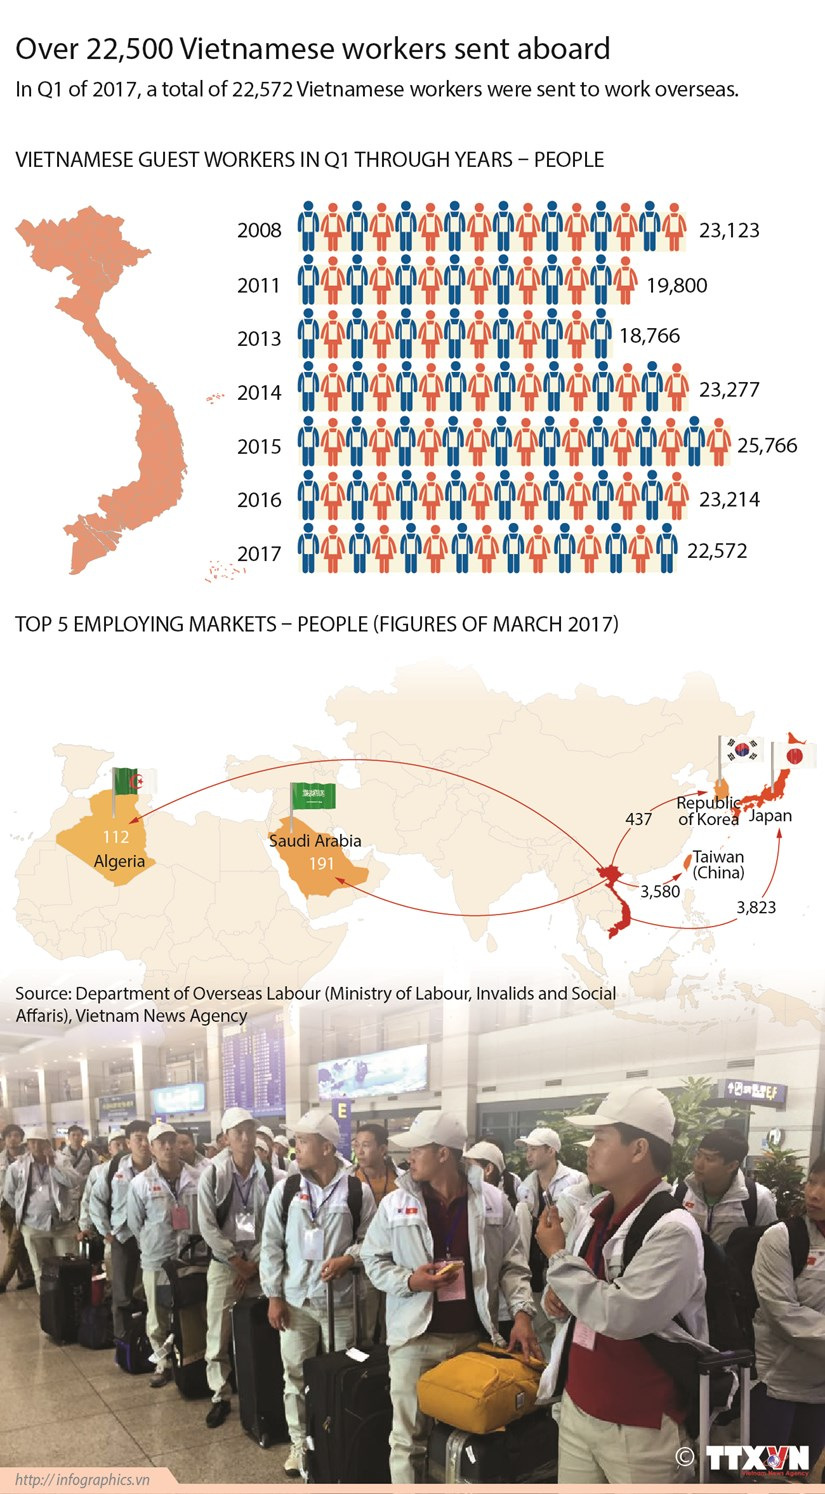 Over 22,500 Vietnamese workers sent aboard hinh anh 1